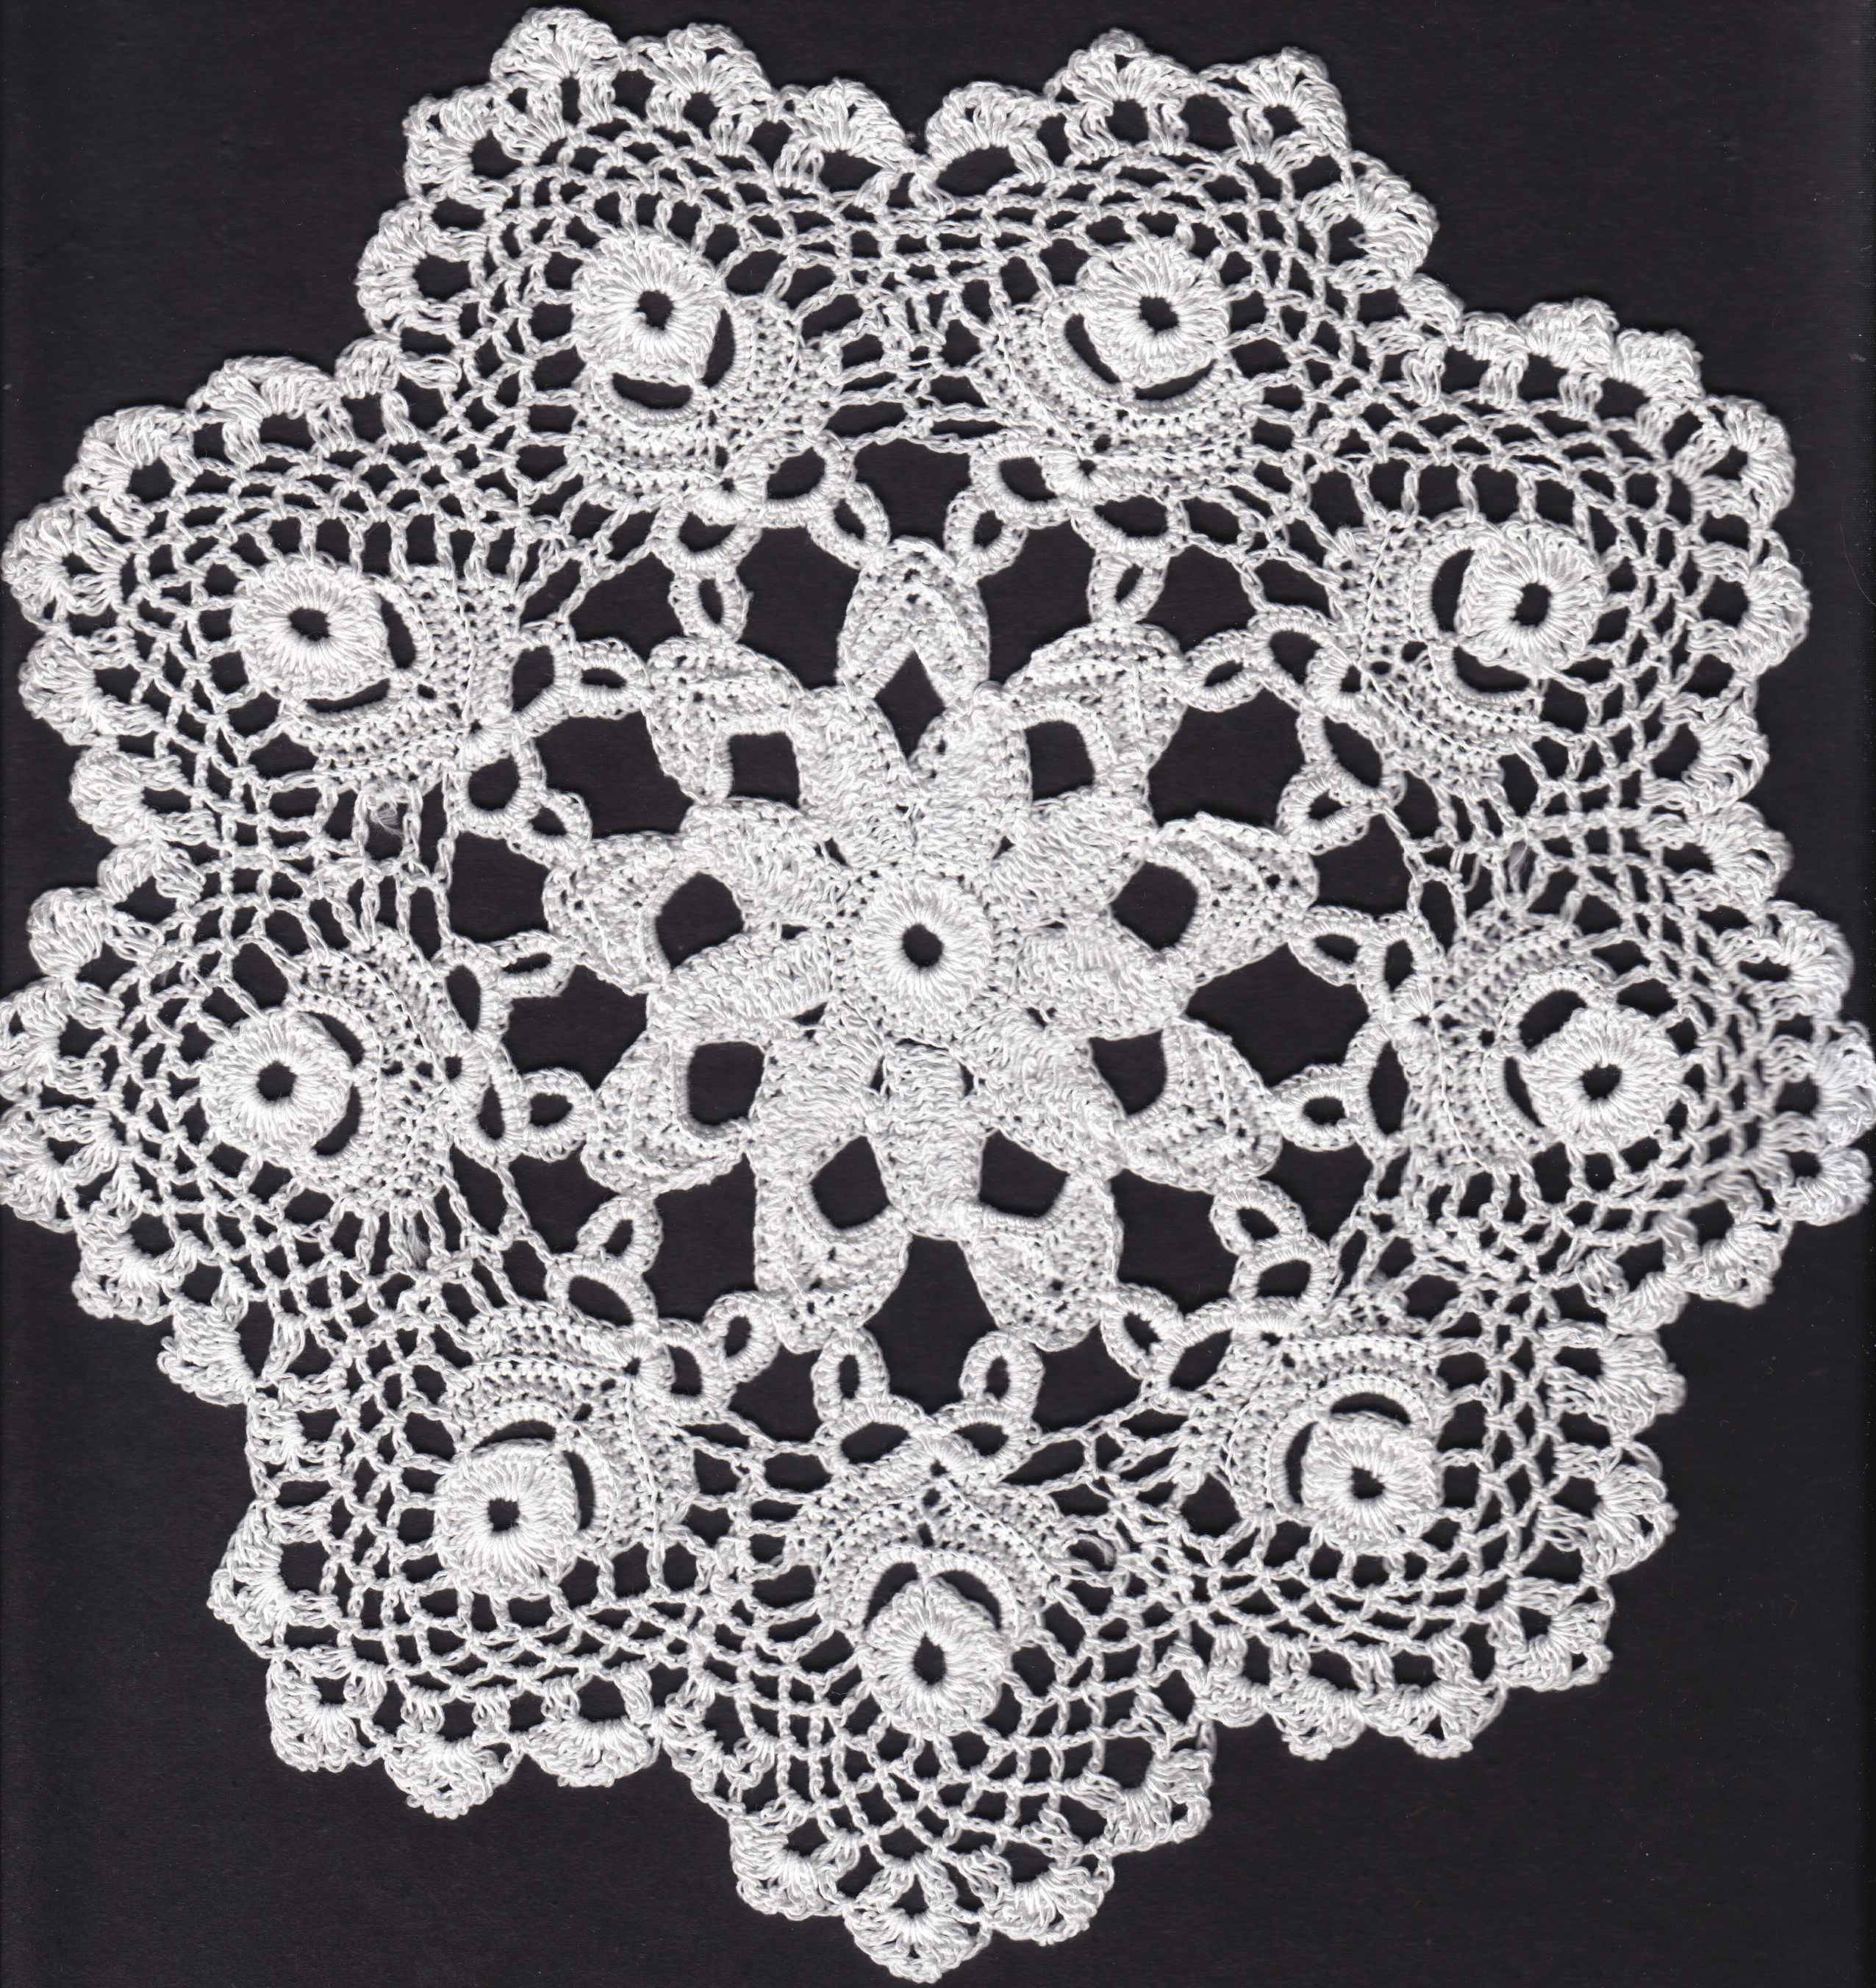 Hand made lace from Koniaków in Poland | croche toalhasredondas ...